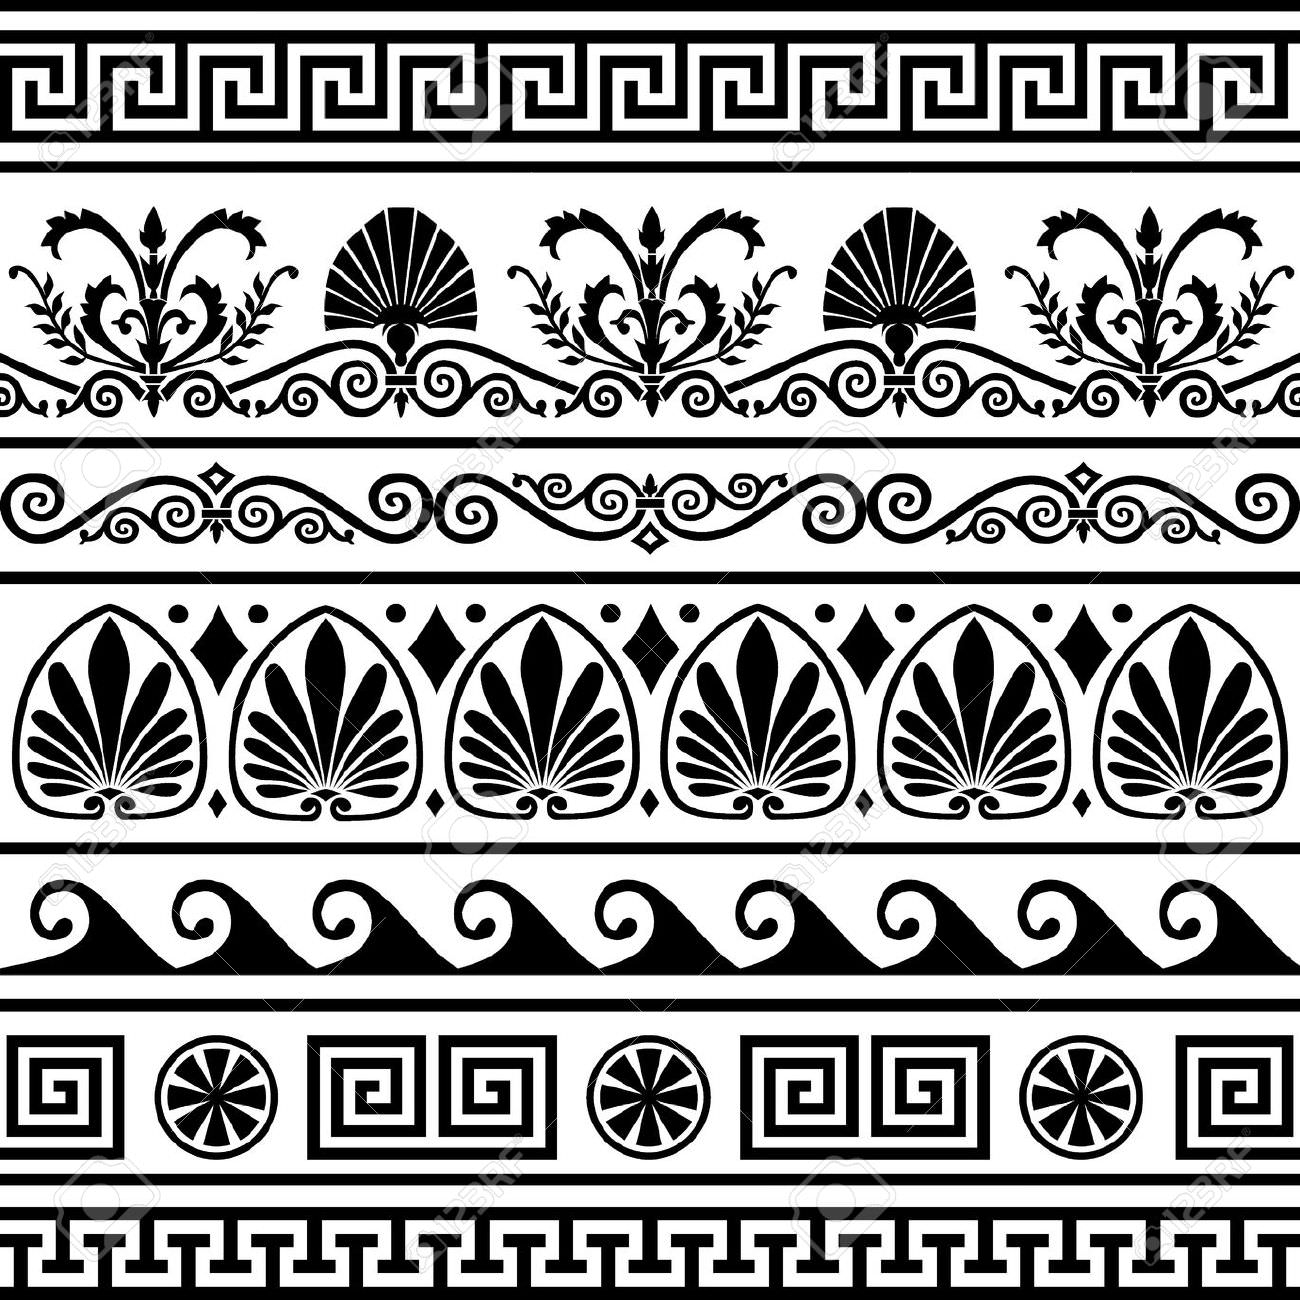 https://images.designtrends.com/wp-content/uploads/2016/03/19111441/Retro-Greek-Pattern-Background.jpg